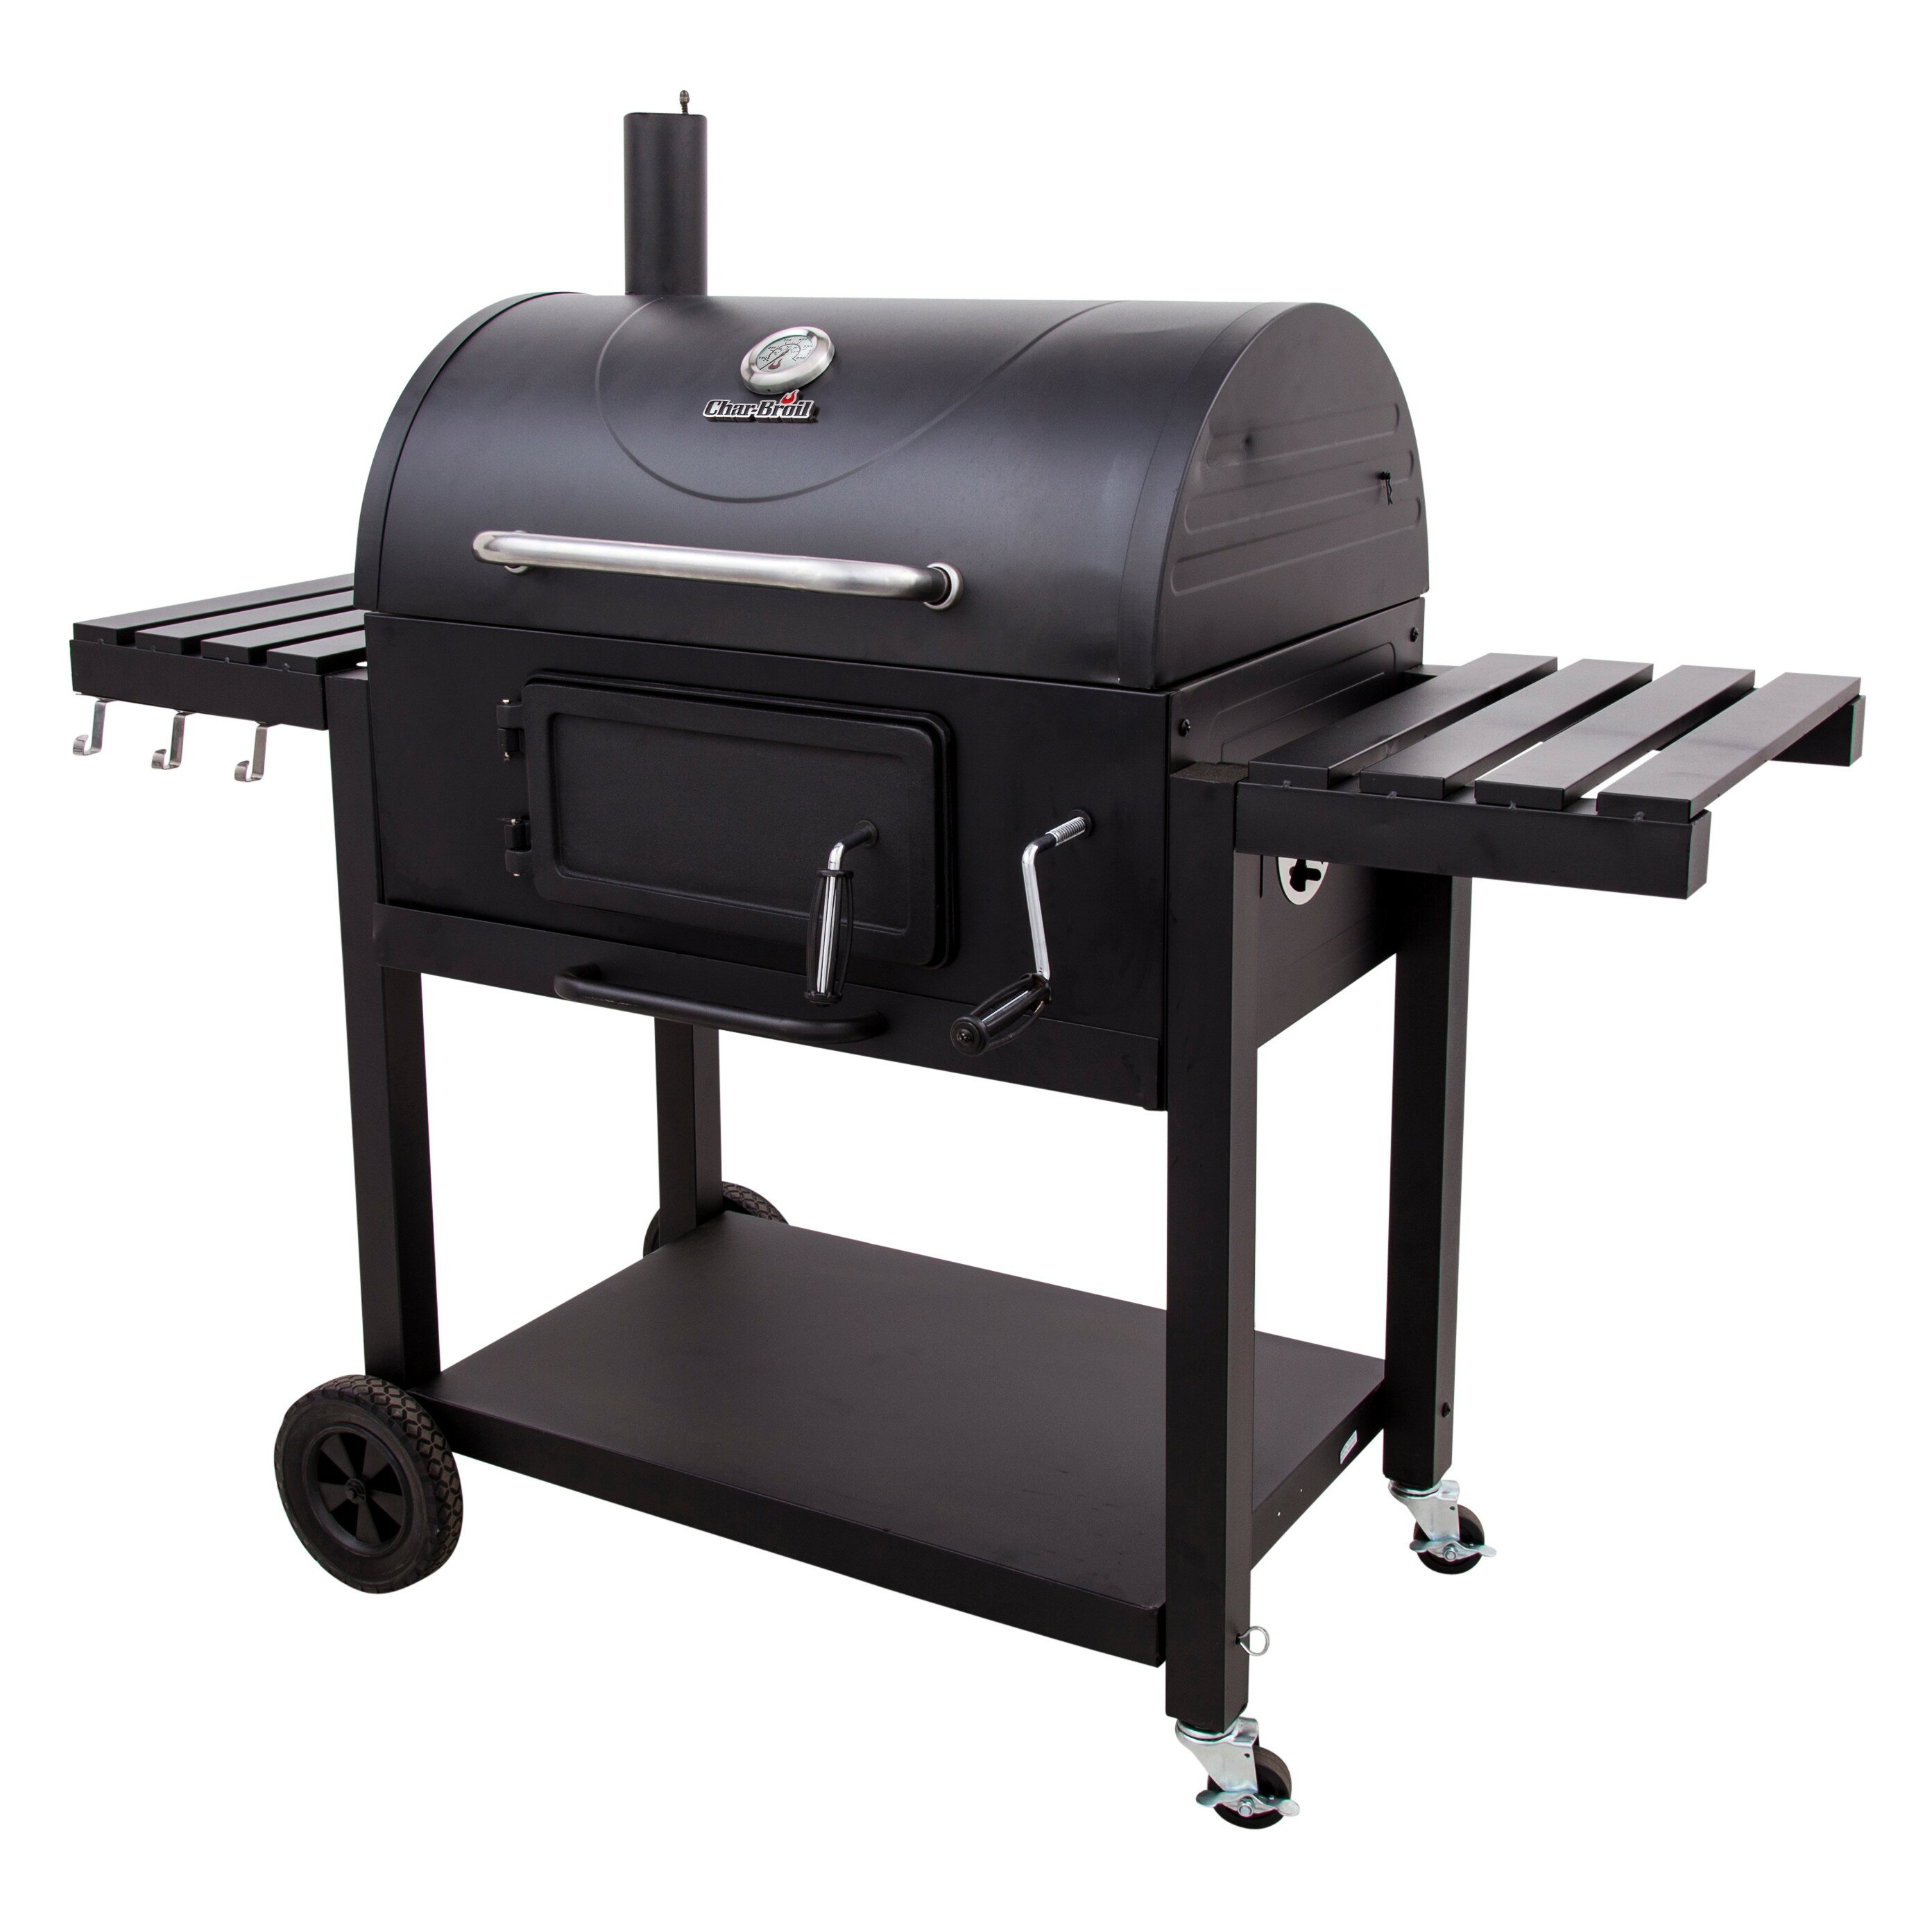 "CharBroil 30"" Deluxe Charcoal Grill & Reviews 